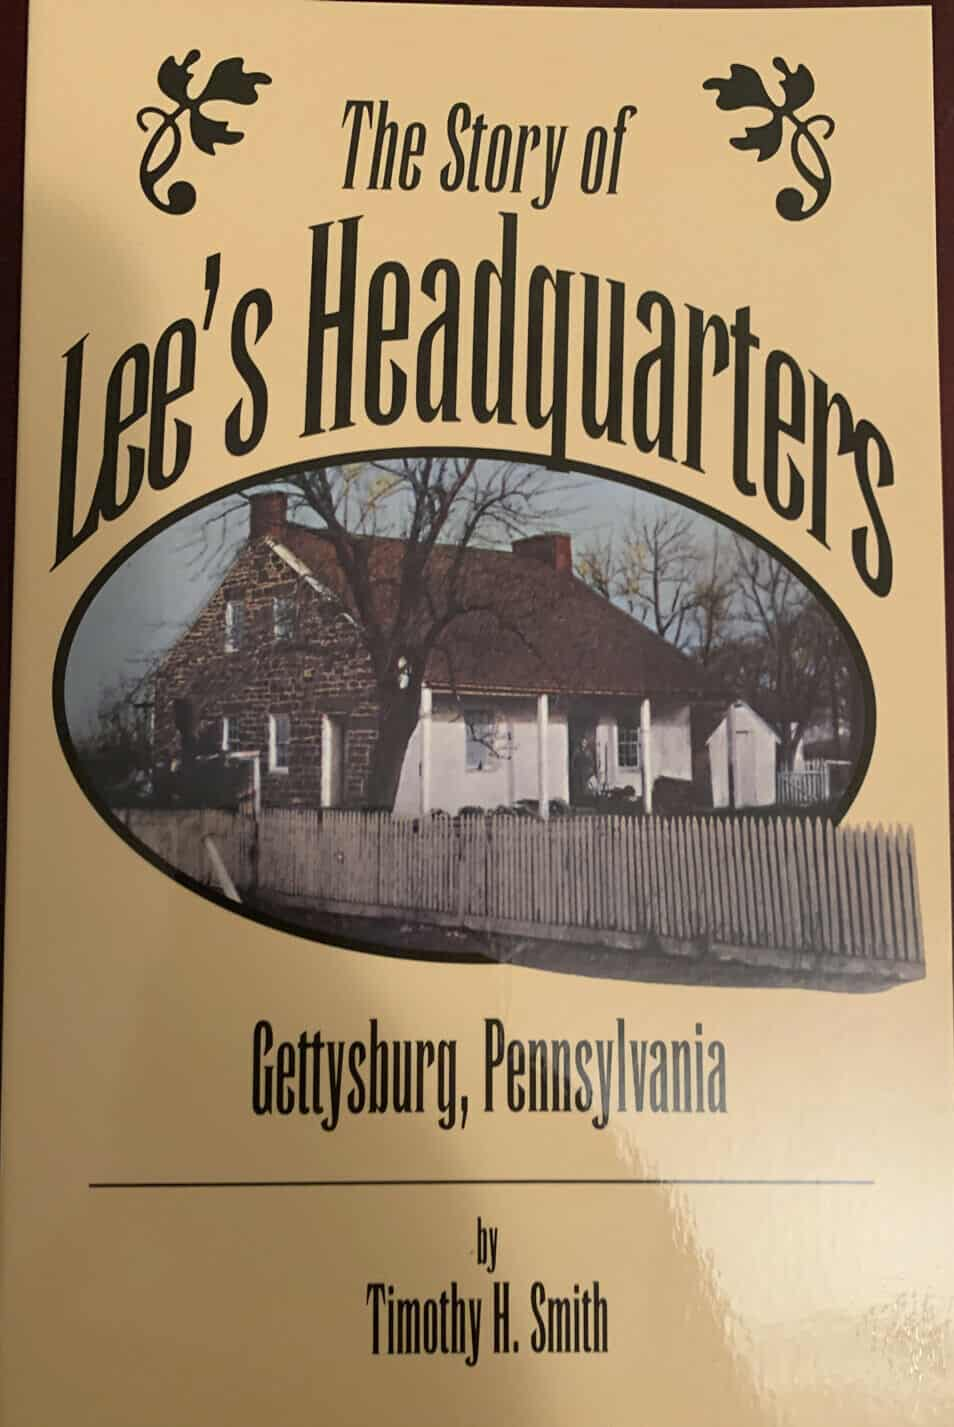 THE STORY OF LEE'S HEADQUARTERS, GETTYSBURG, PA